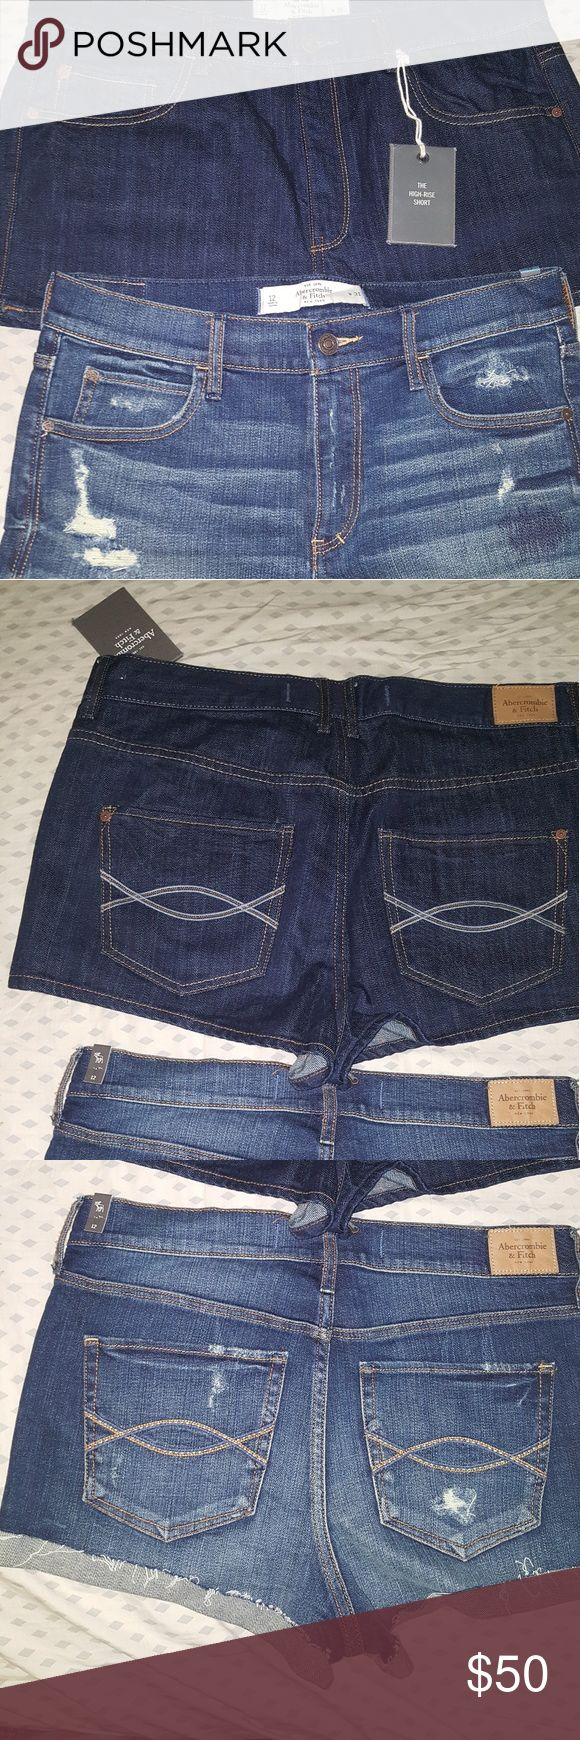 Nwt Abercrombie and Fitch shorts size 12 The high rise are nwt size 12 dark wash and the destroyed denim are also a 12 but in a lighter wash. Hard to find Size! Abercrombie & Fitch Shorts Jean Shorts